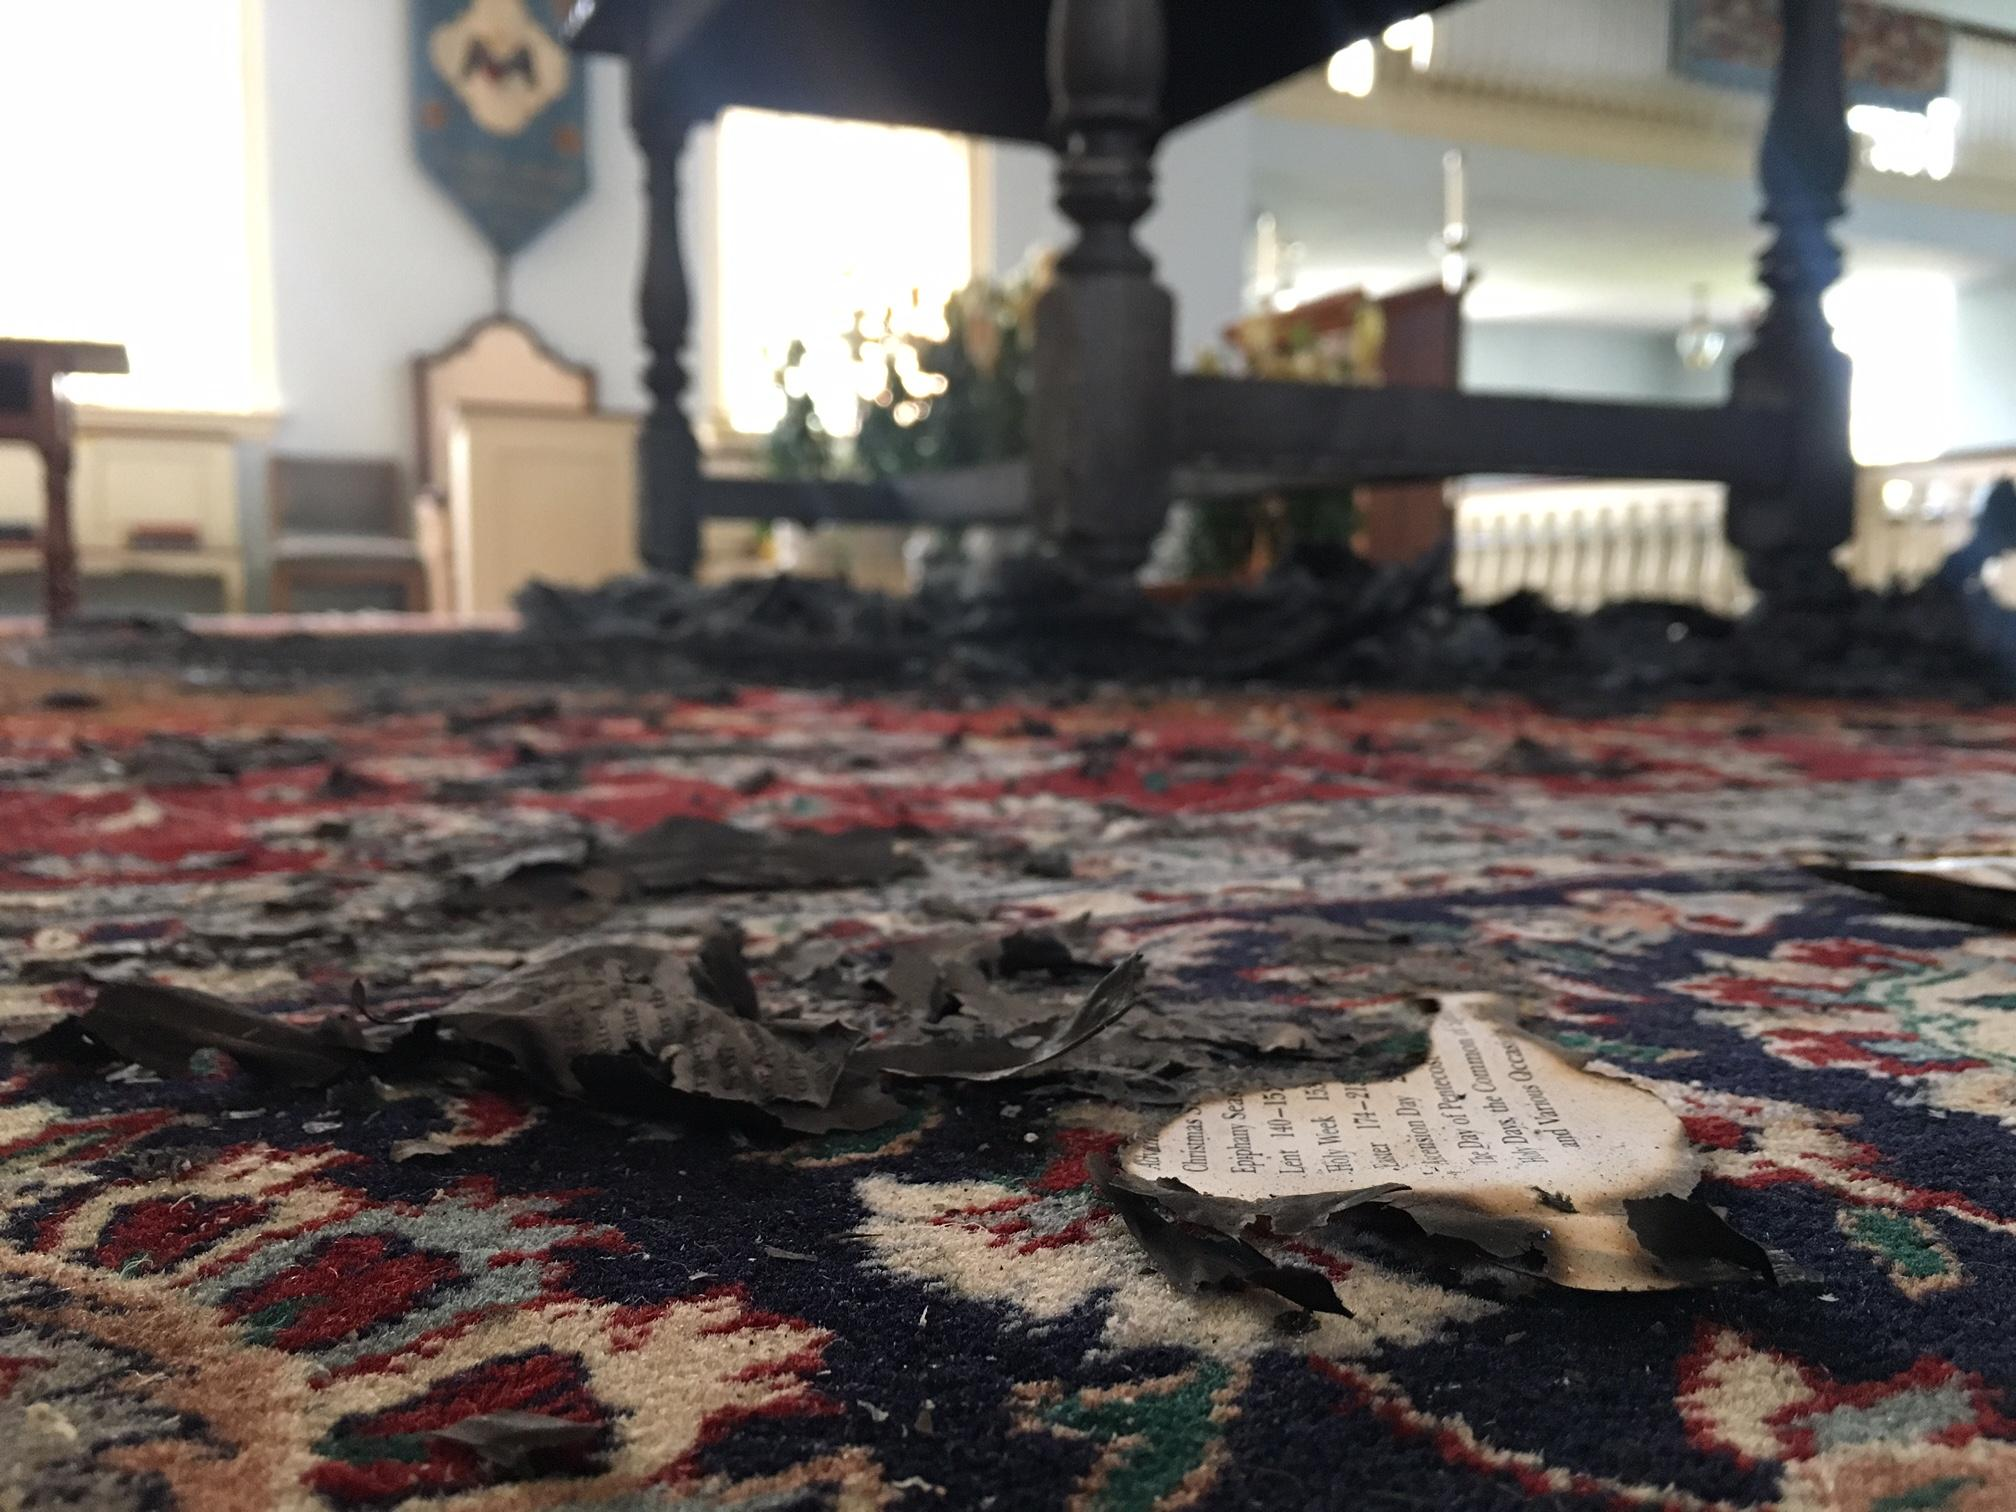 The Rev. Lisa Graves said it appeared some sort of kindling was used to start a fire on the main altar. (WCHS/WVAH)